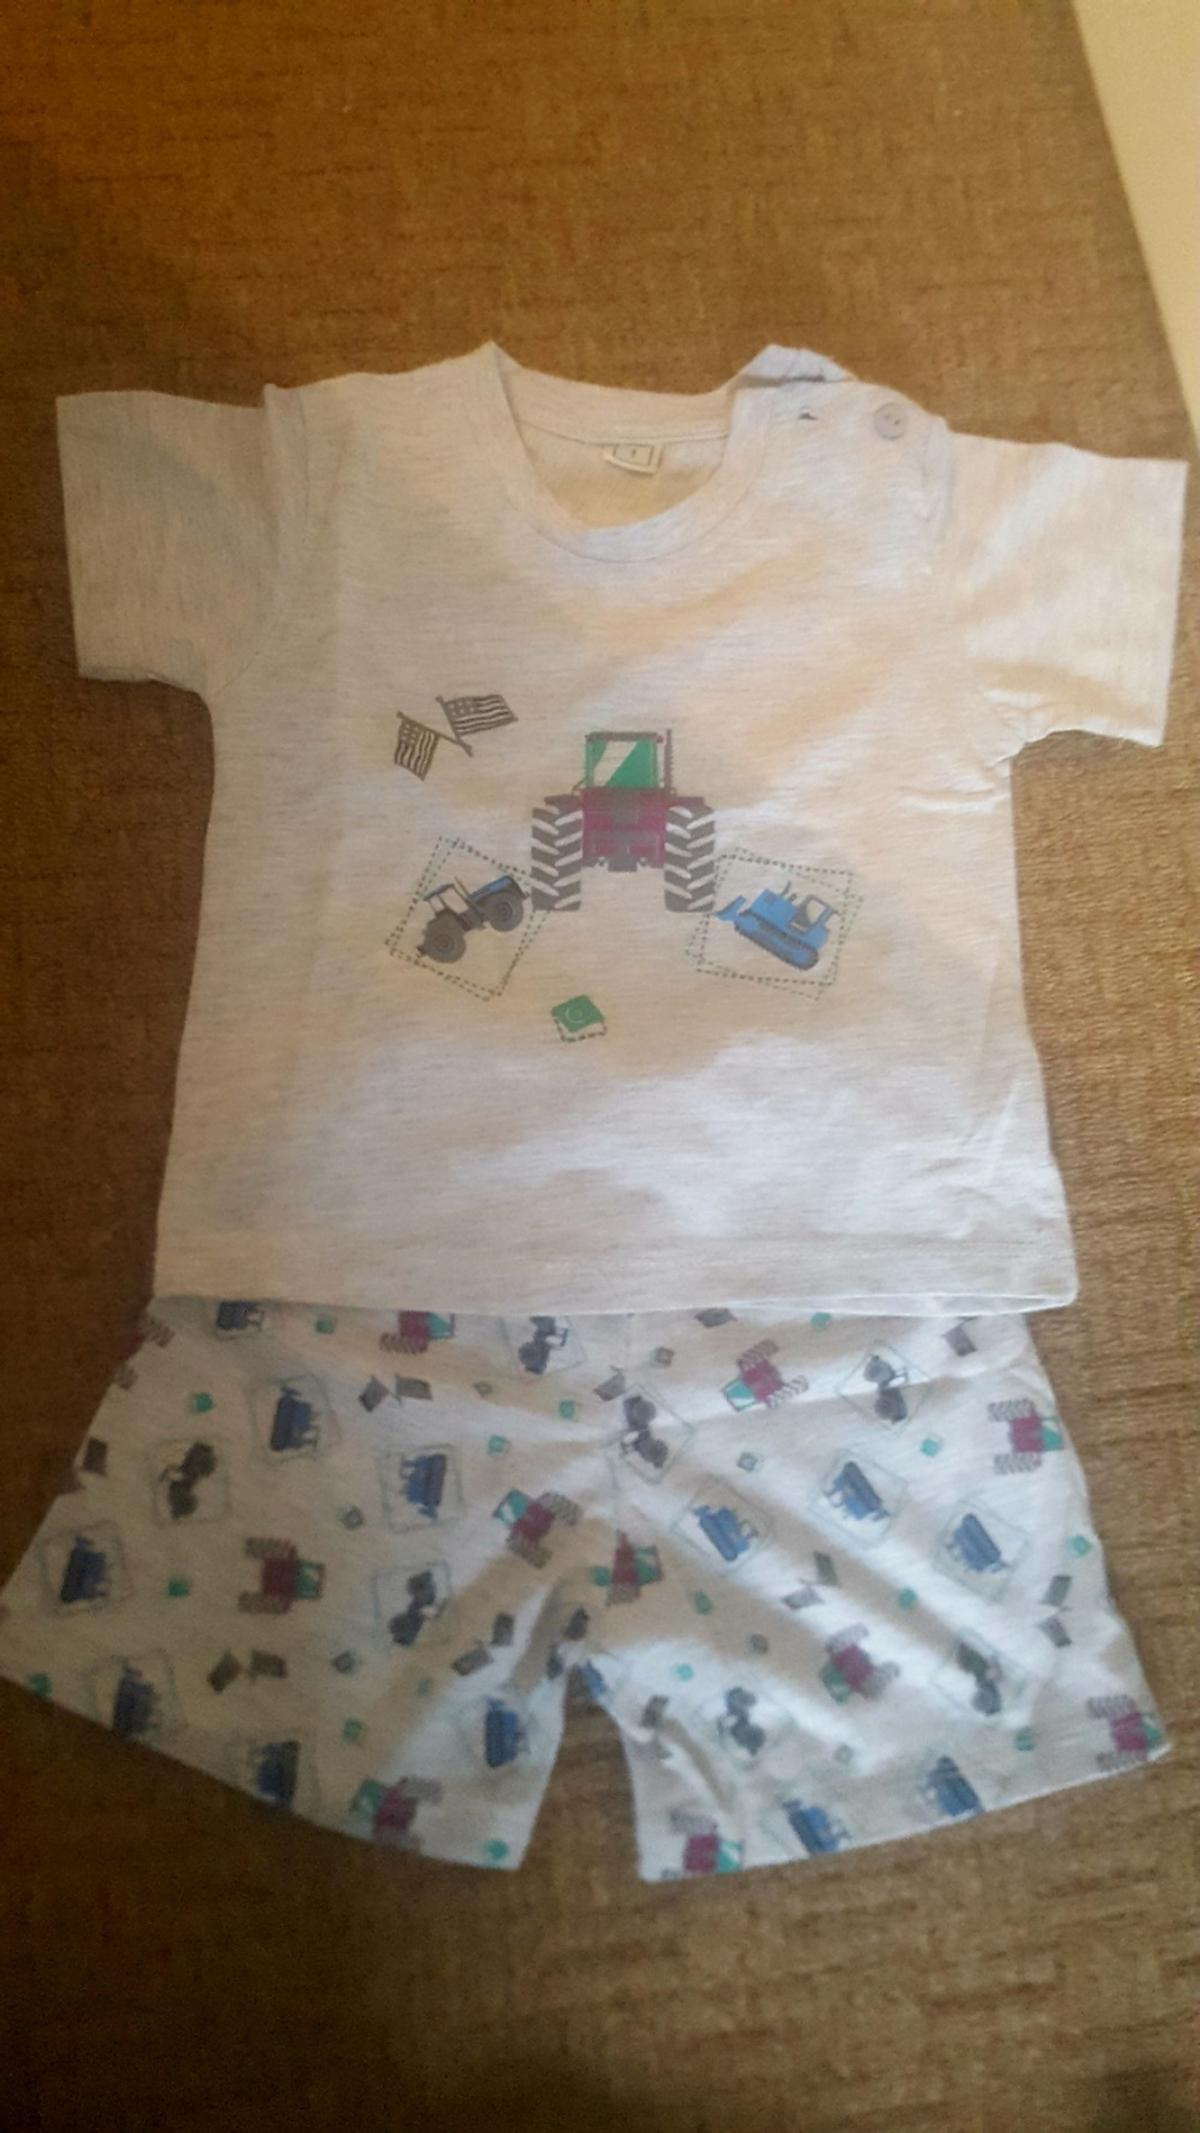 Brand new without tags baby boy summer outfit (pjs) - 9-12 months, unwanted gift. From smoke and pet free home. Collection S65 Rotherham